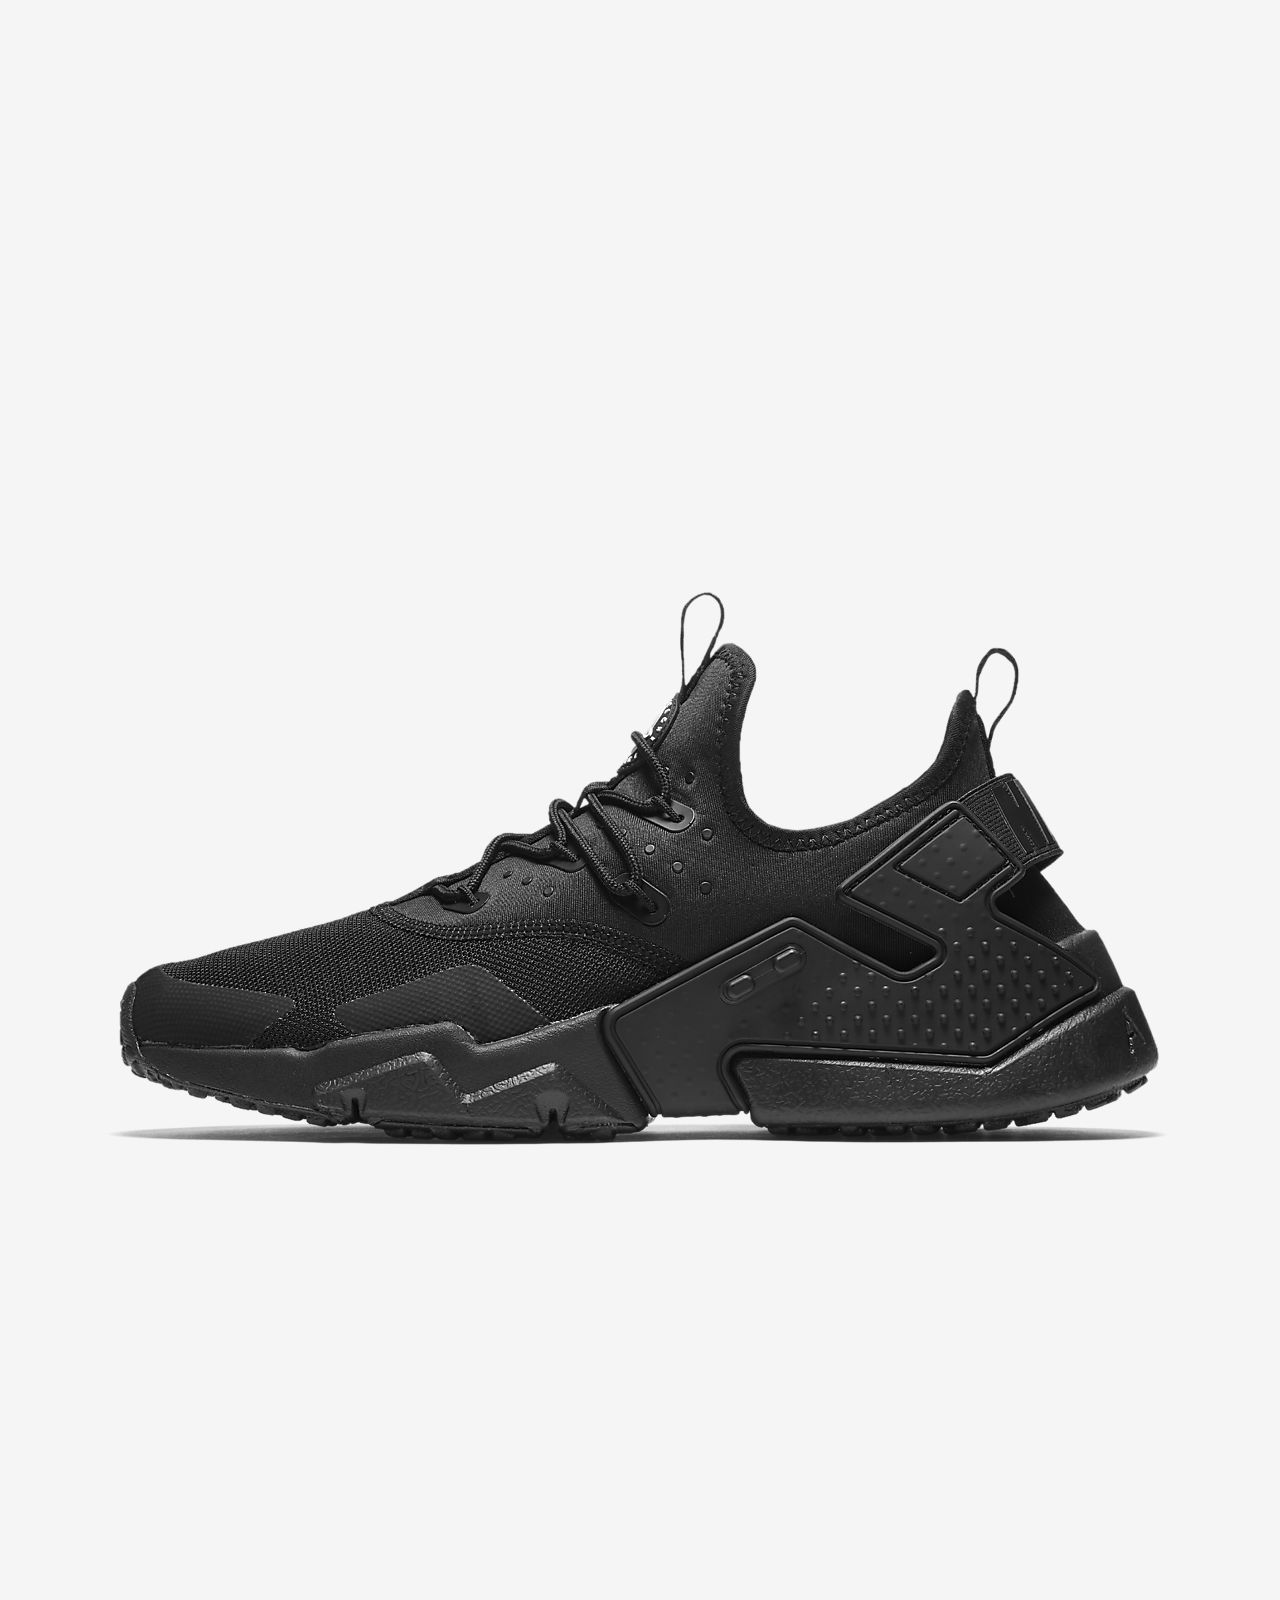 39876ff002f1 Nike Men s Shoe Huarache Drift in 2019